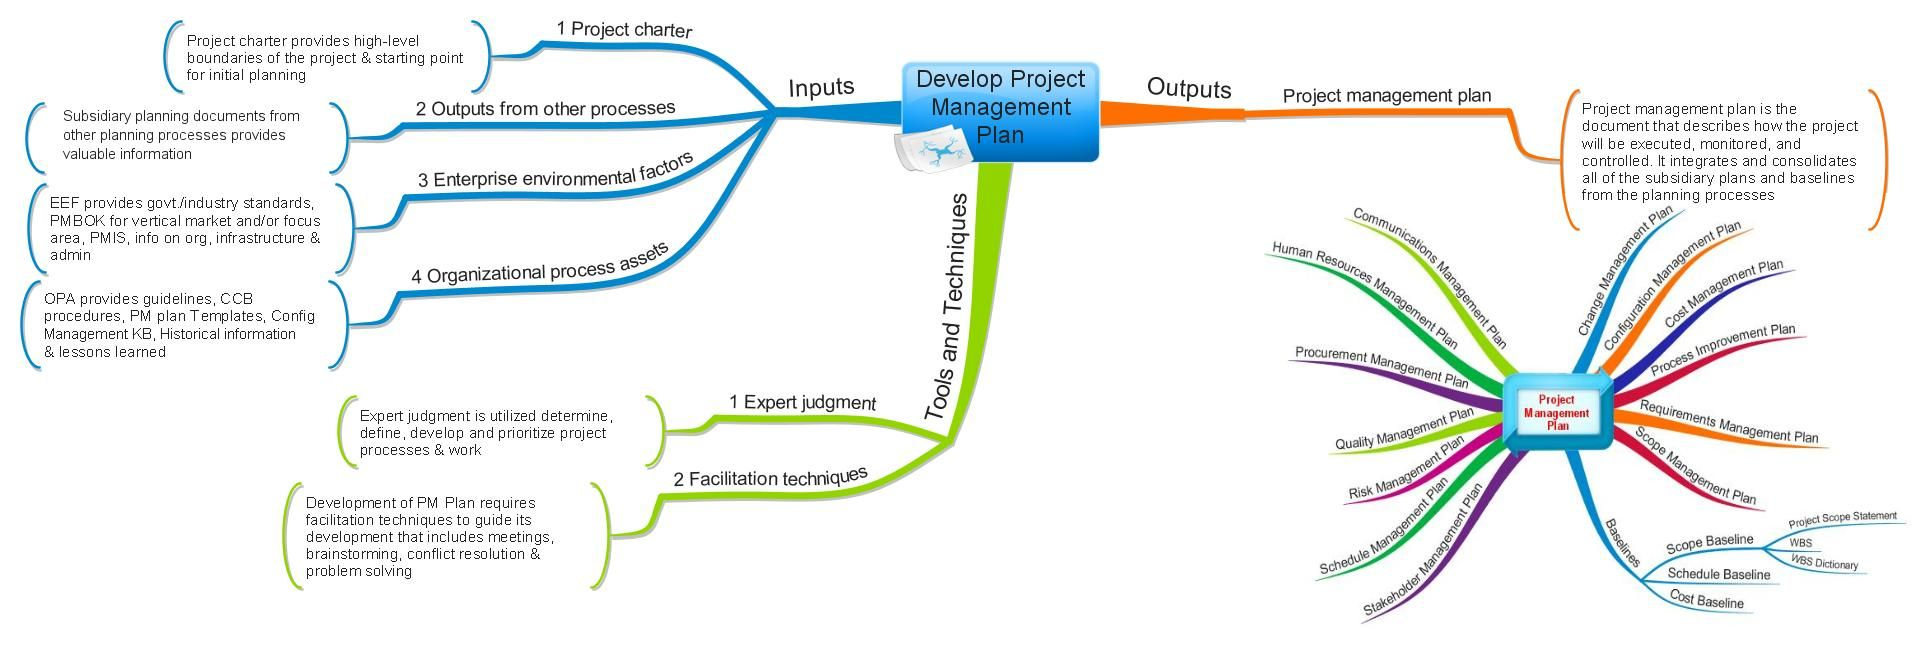 Develop Project Management Plan   Process Mind Map (Aligned With PMBOK  Edition)